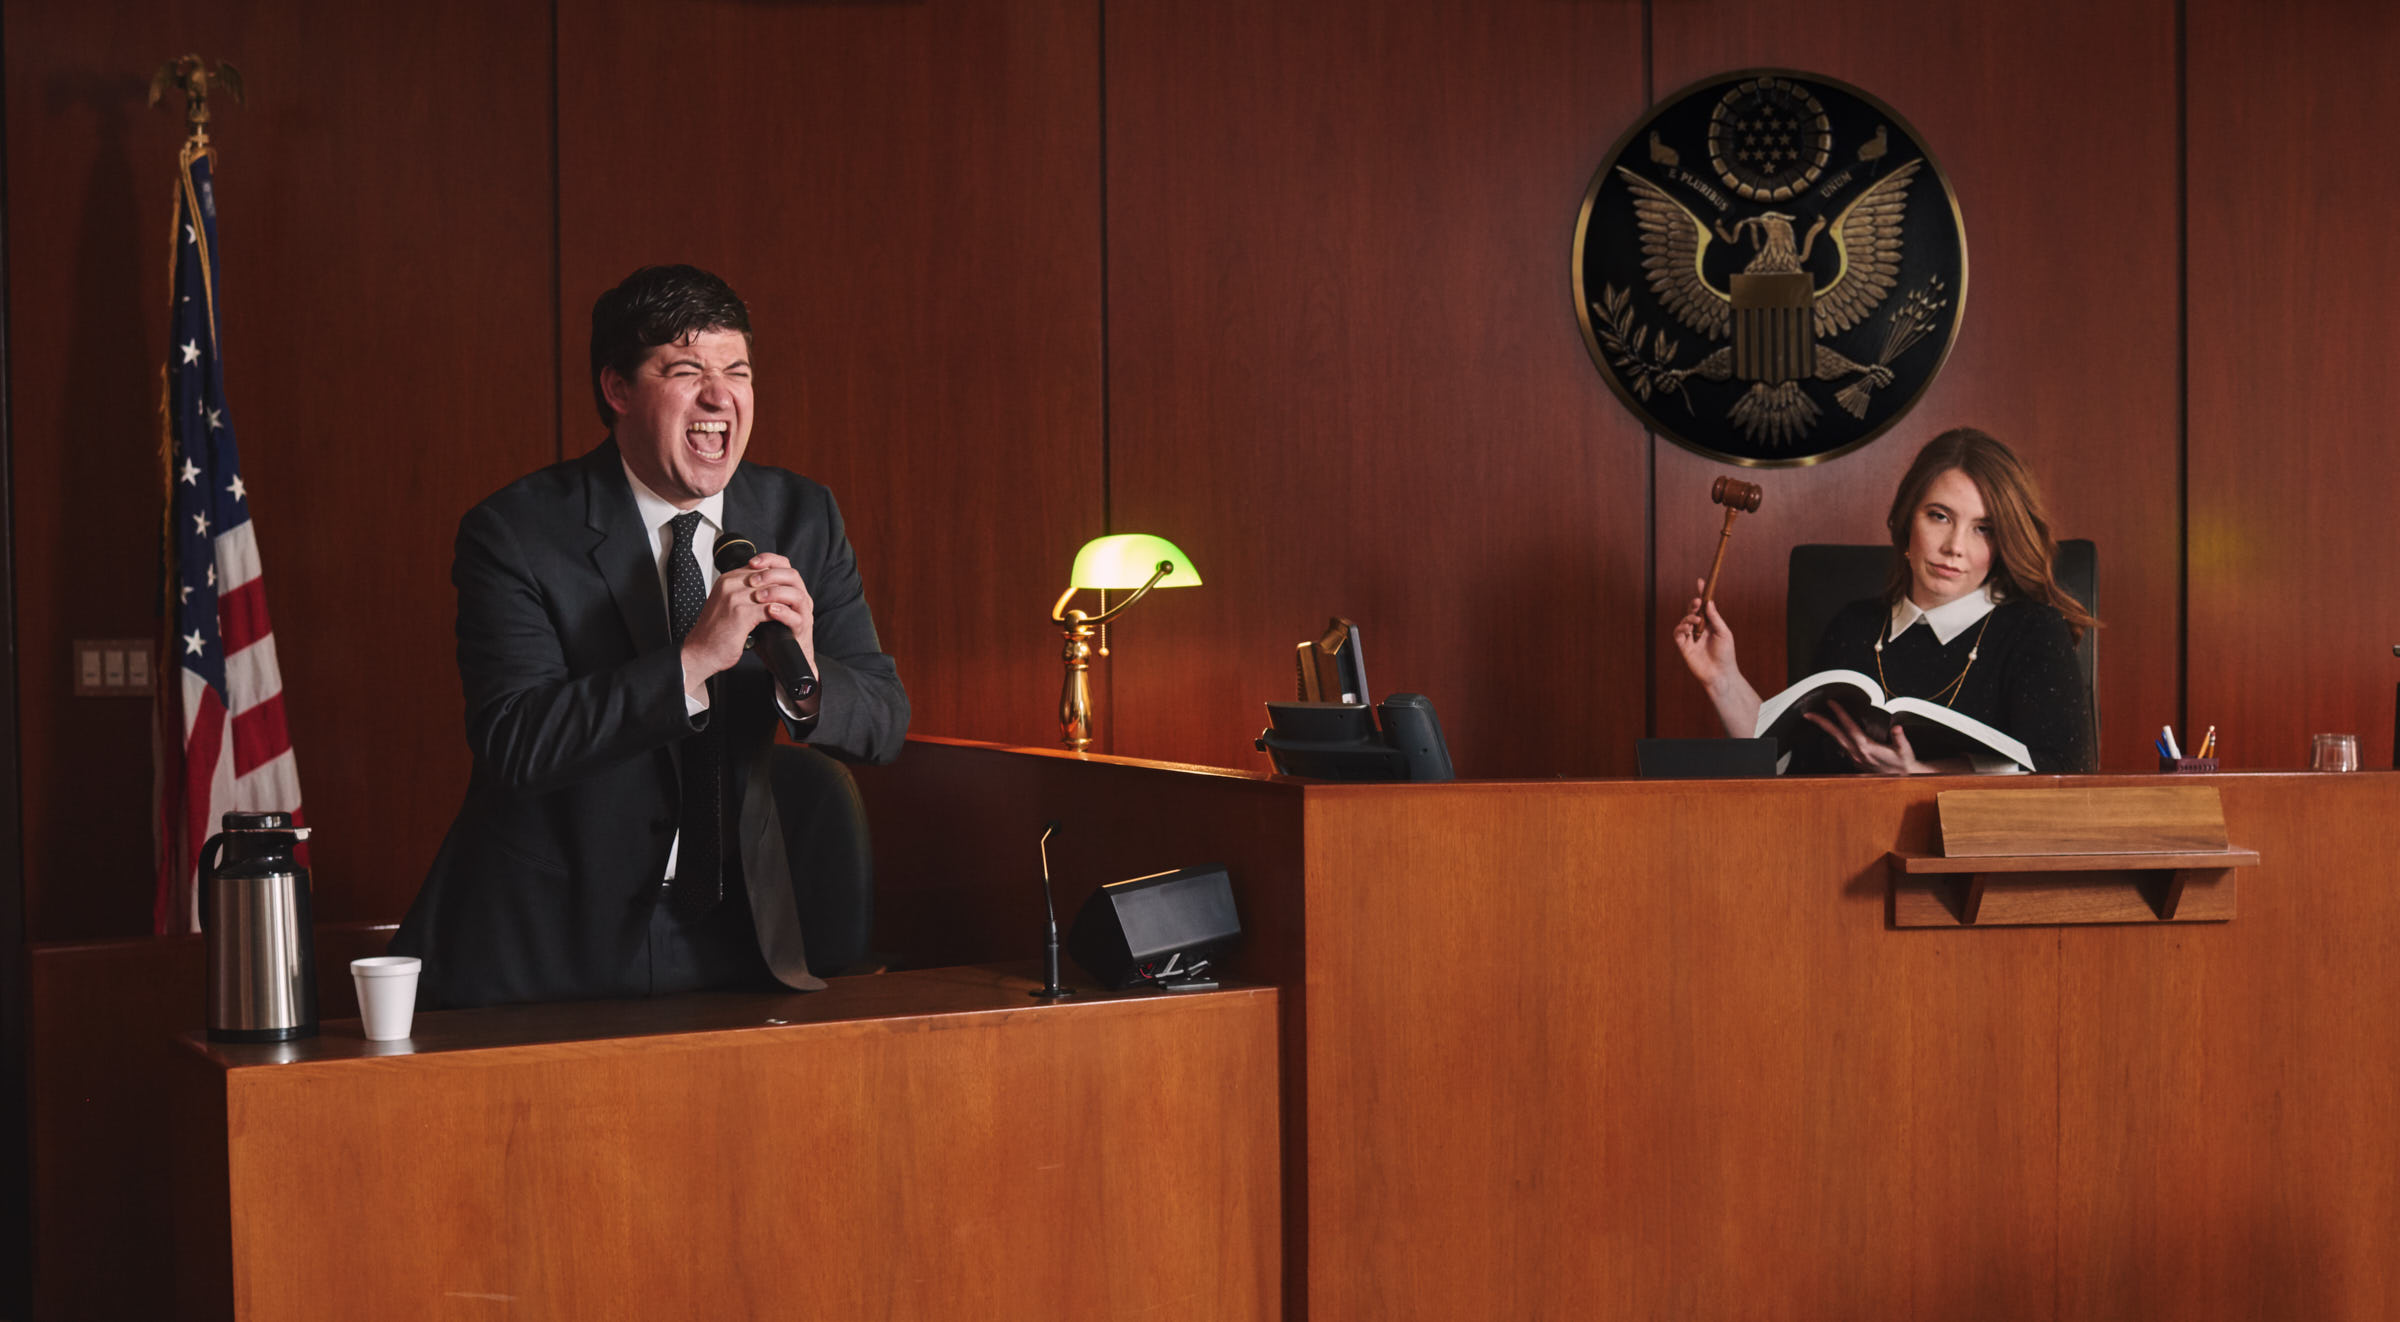 Funny engagement in the courtroom